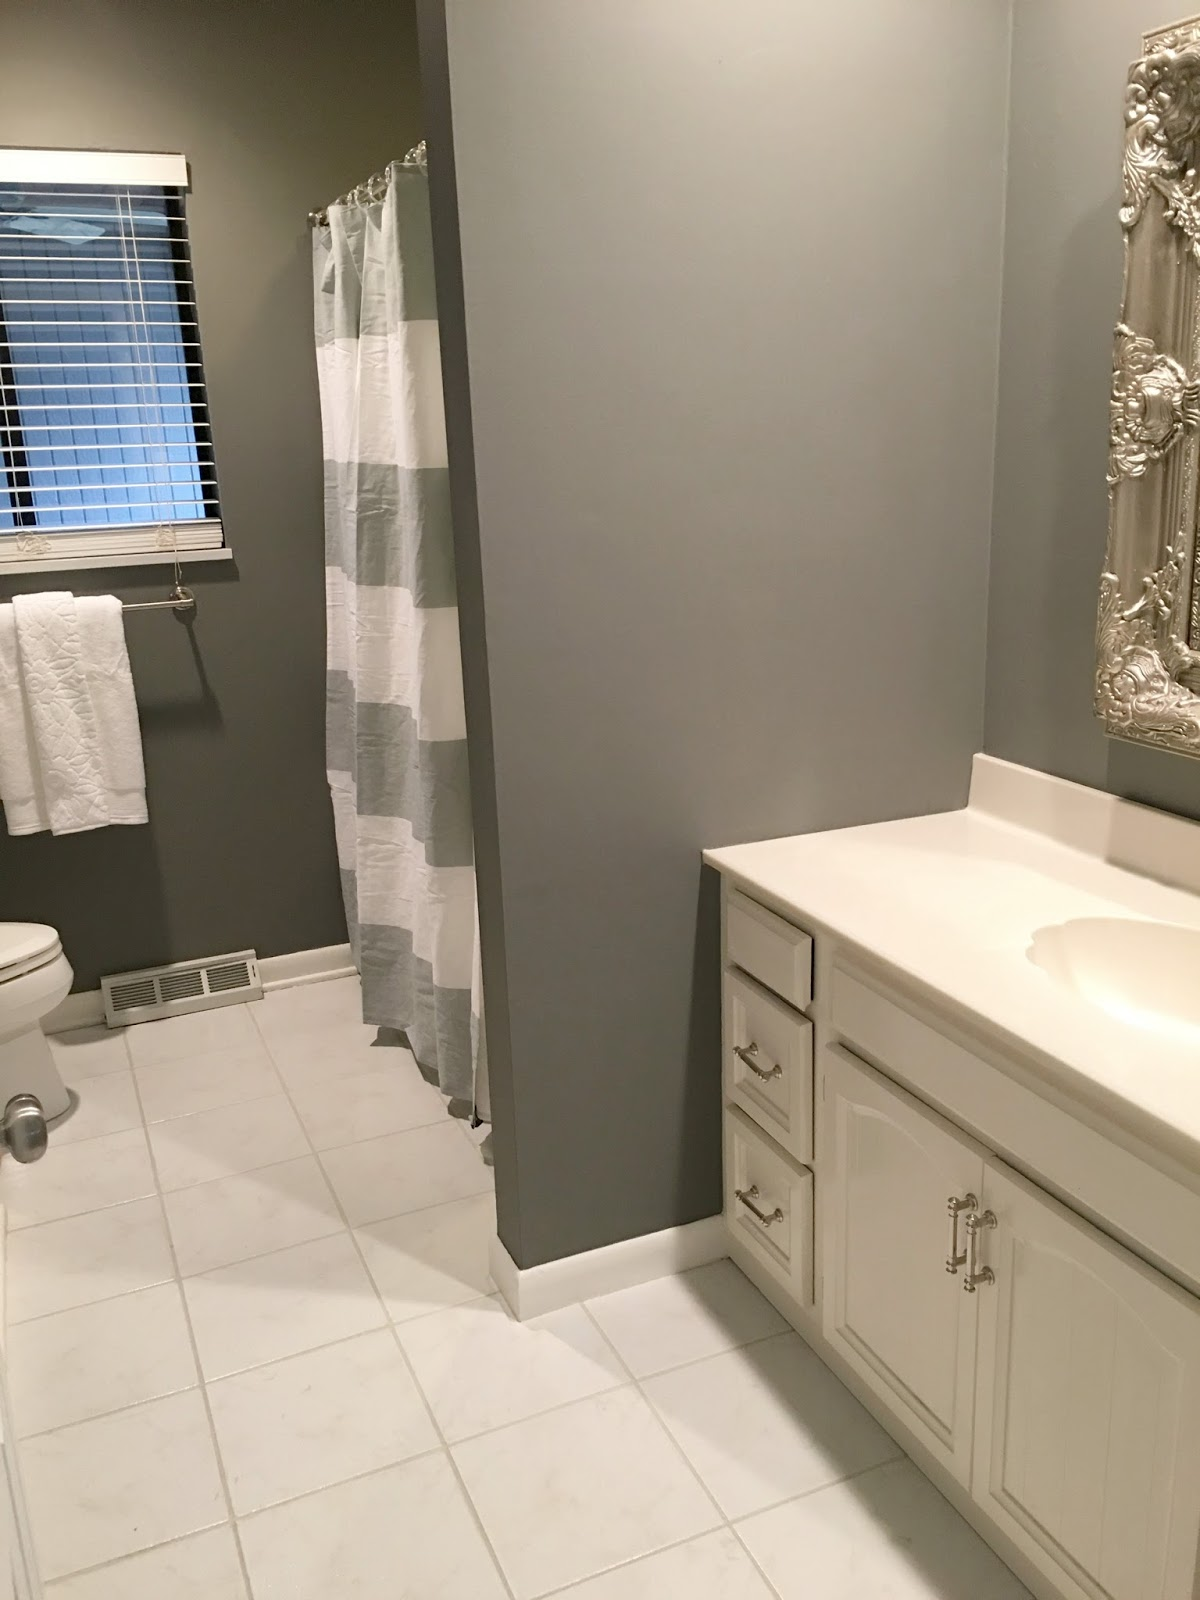 High Quality DIY Bathroom Remodel On A Budget